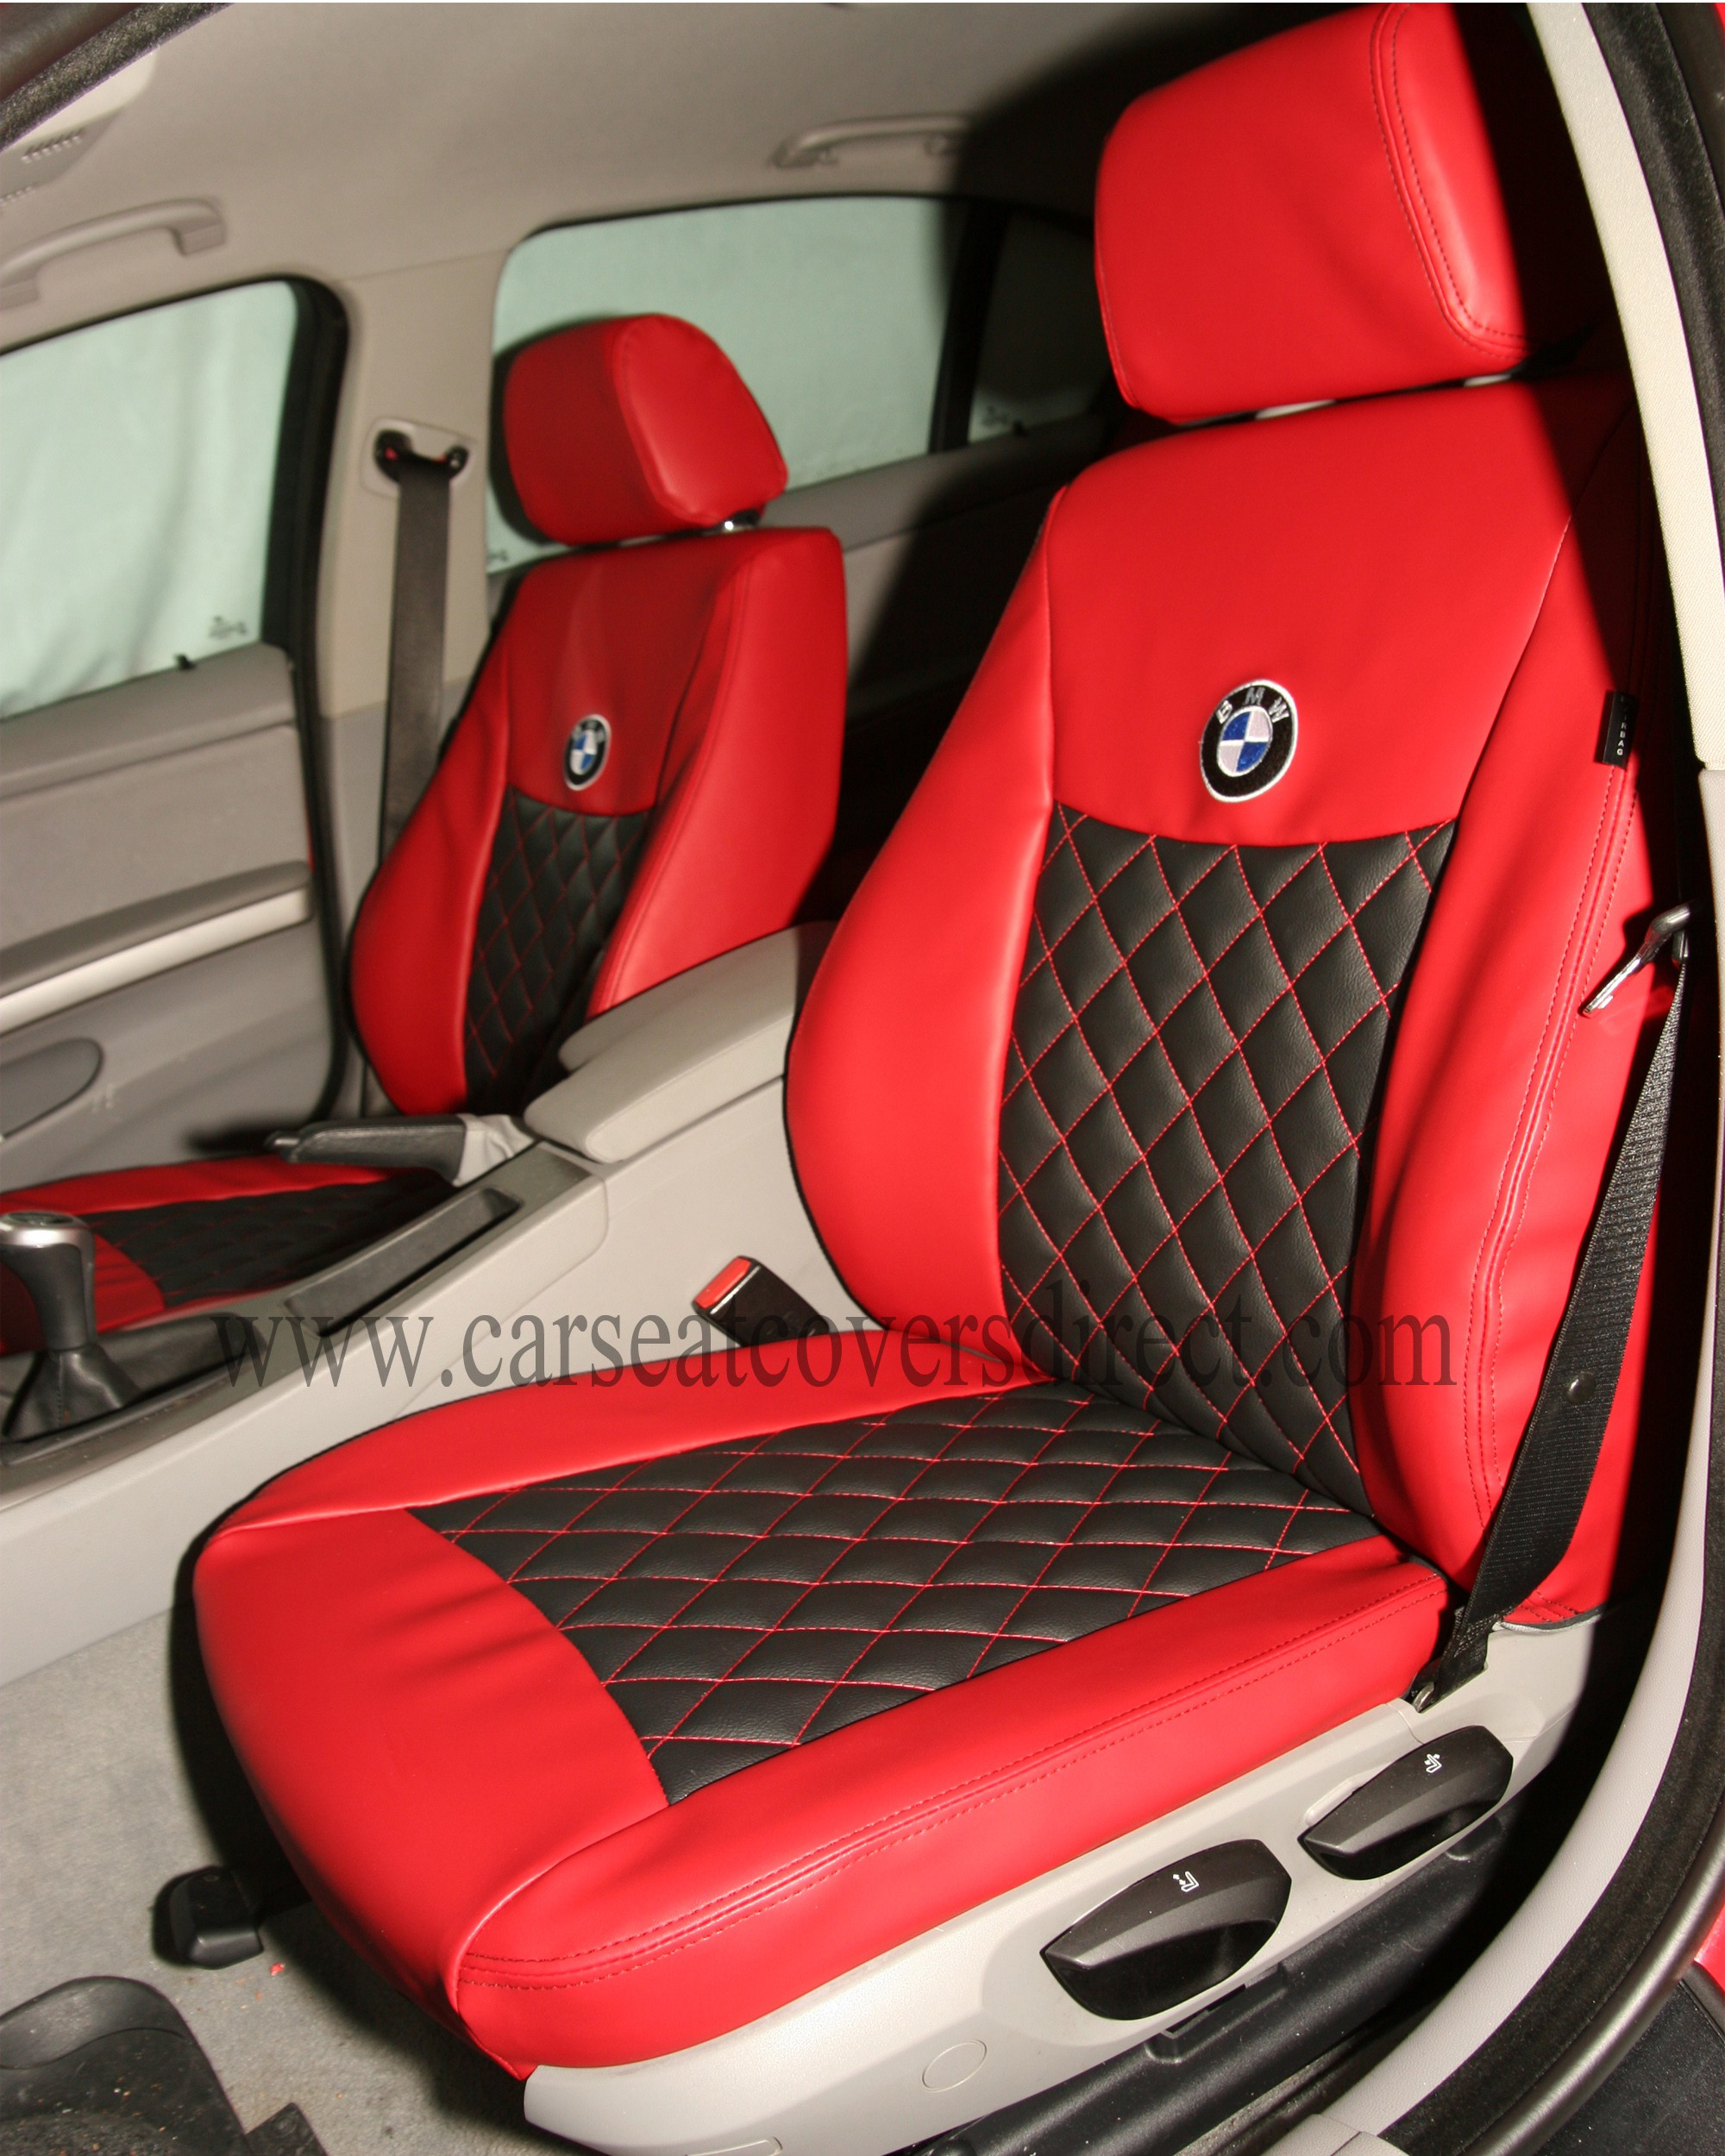 Bmwcarimage: Bmw Sport Seat Covers